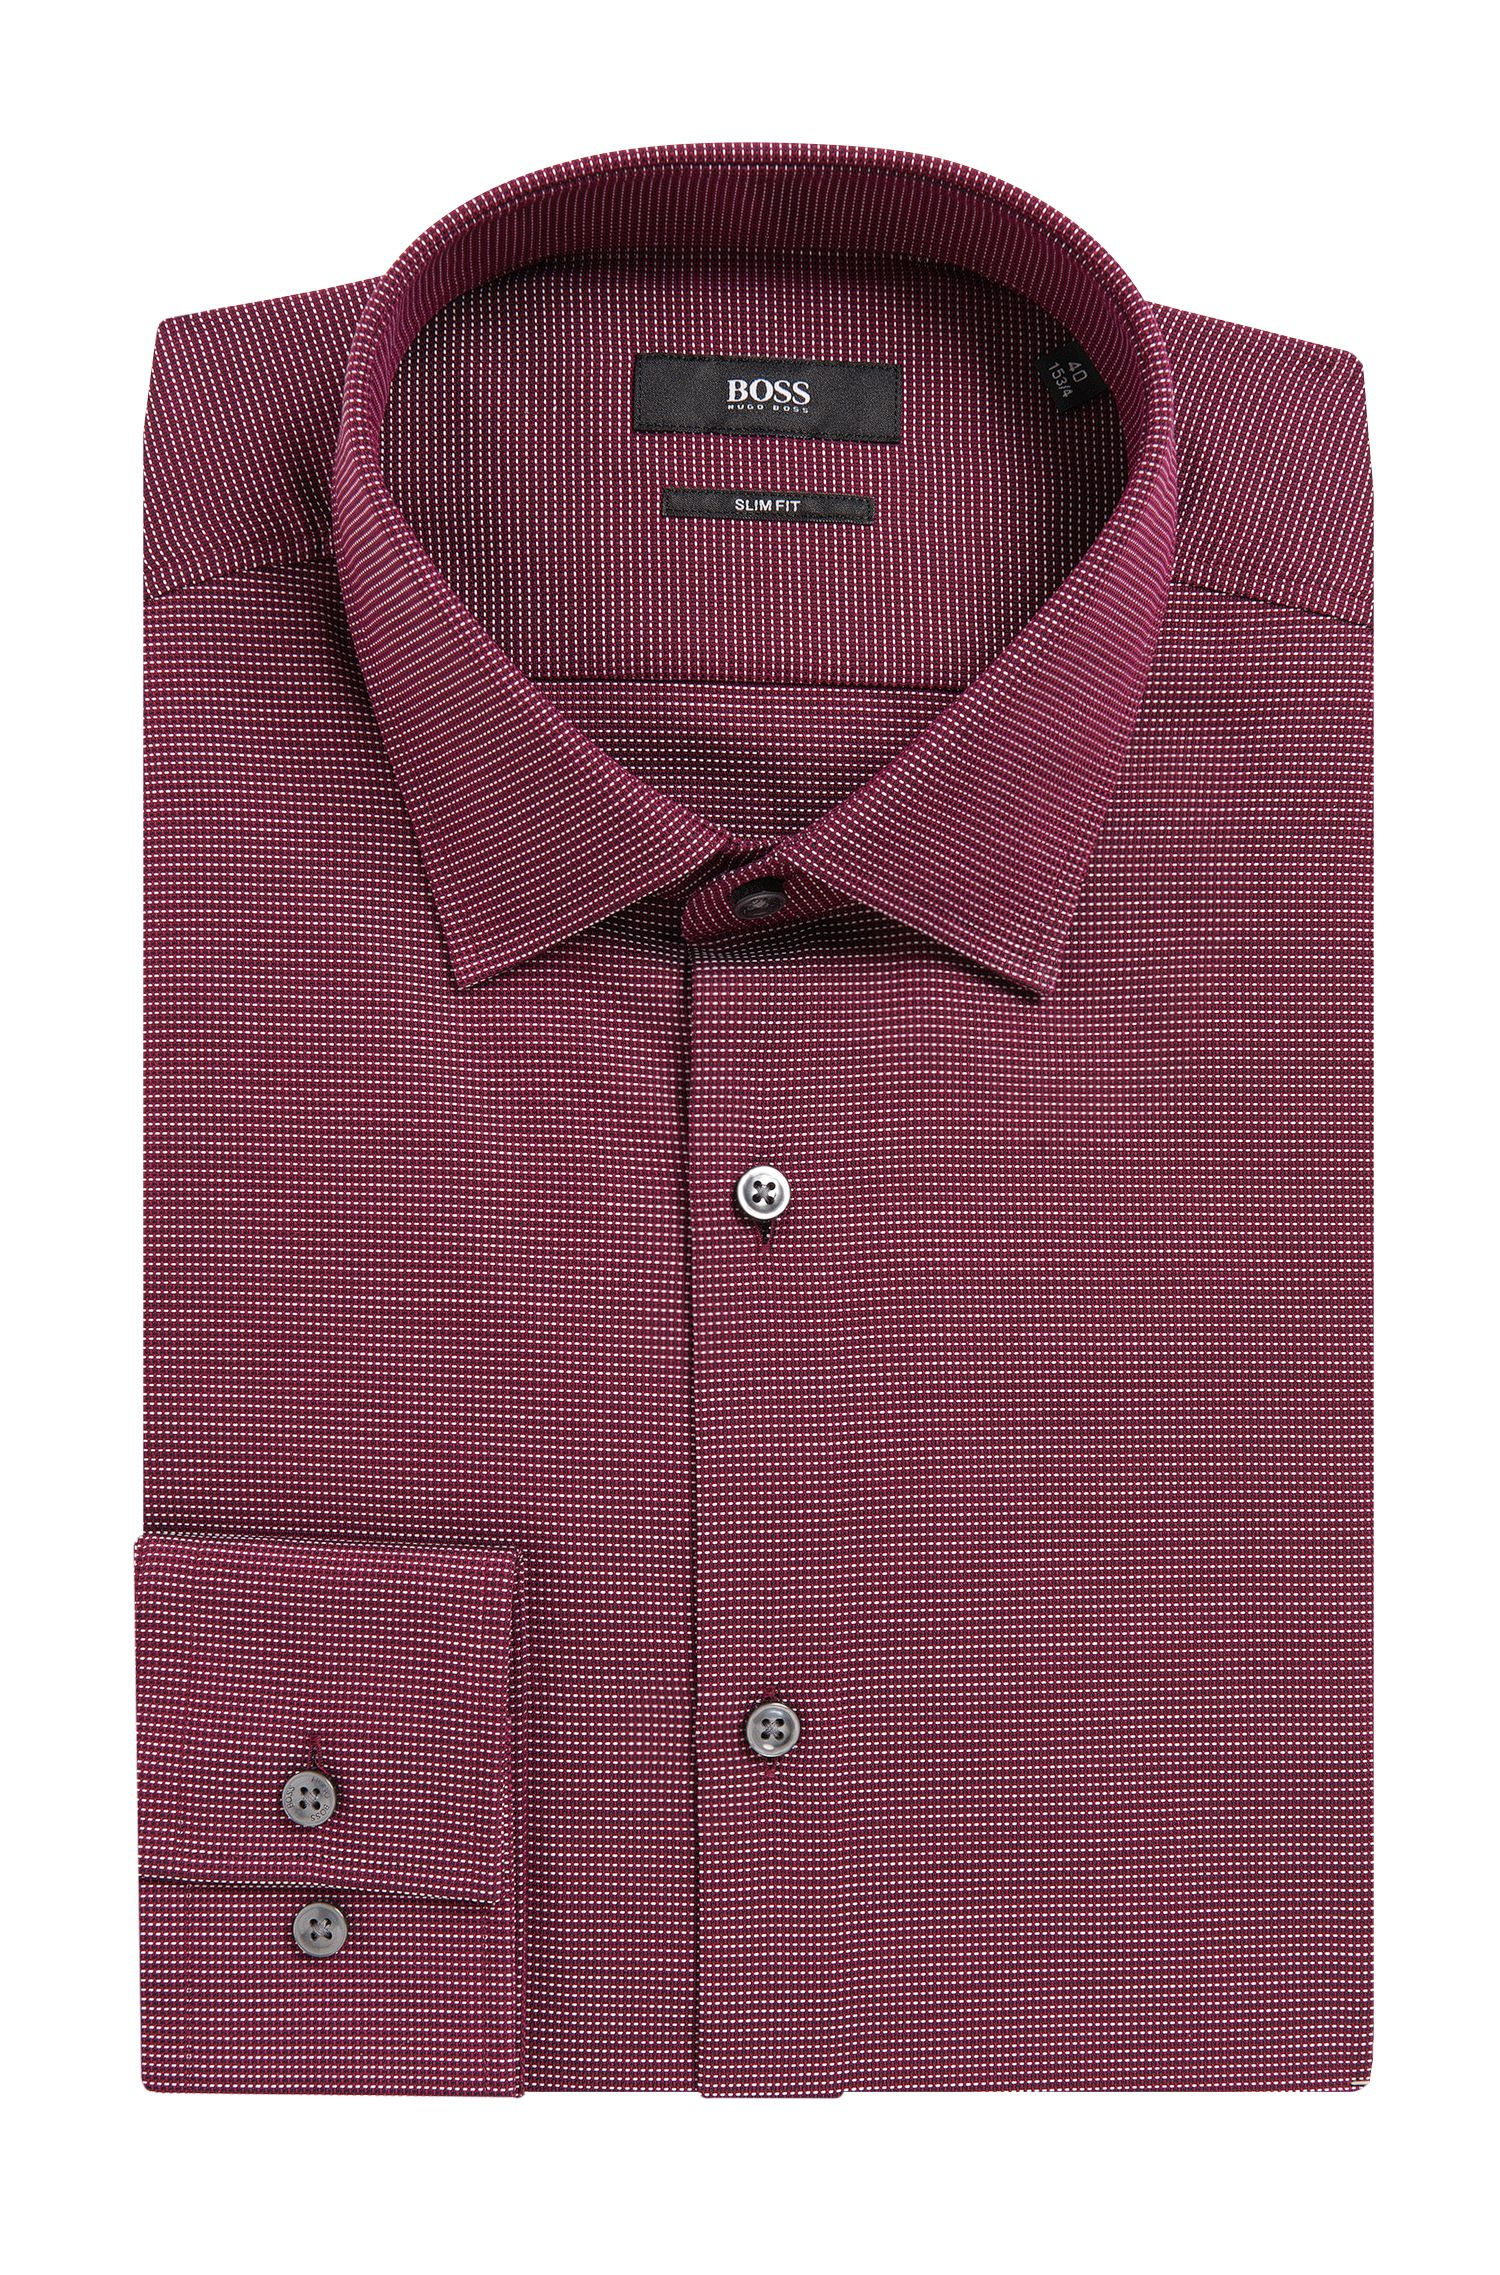 Nailhead Cotton Dress Shirt, Slim Fit | Jenno